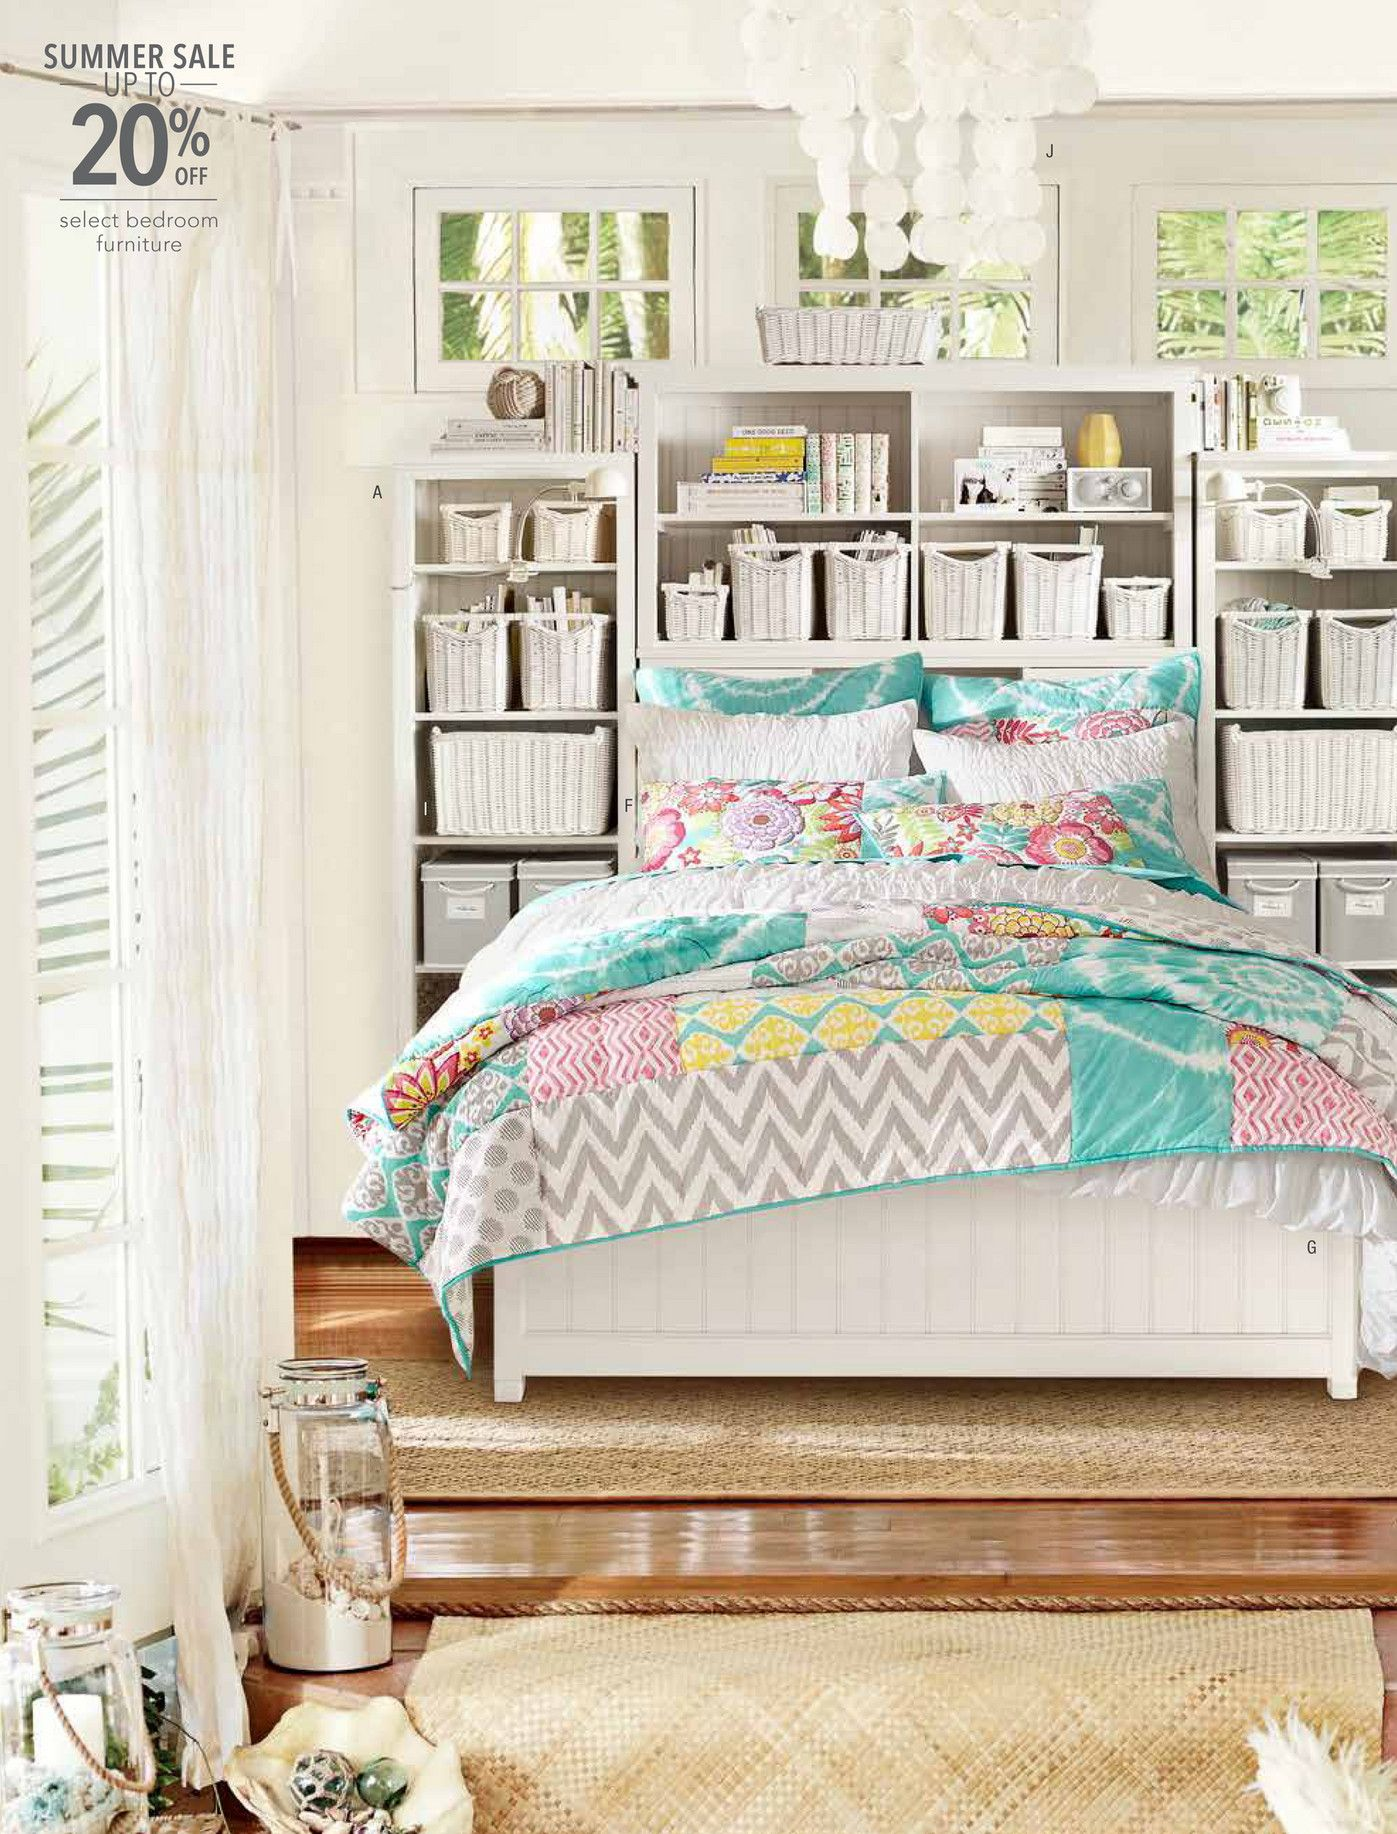 Pottery Barn Teen PBTeen Summer D2 Page 100 101